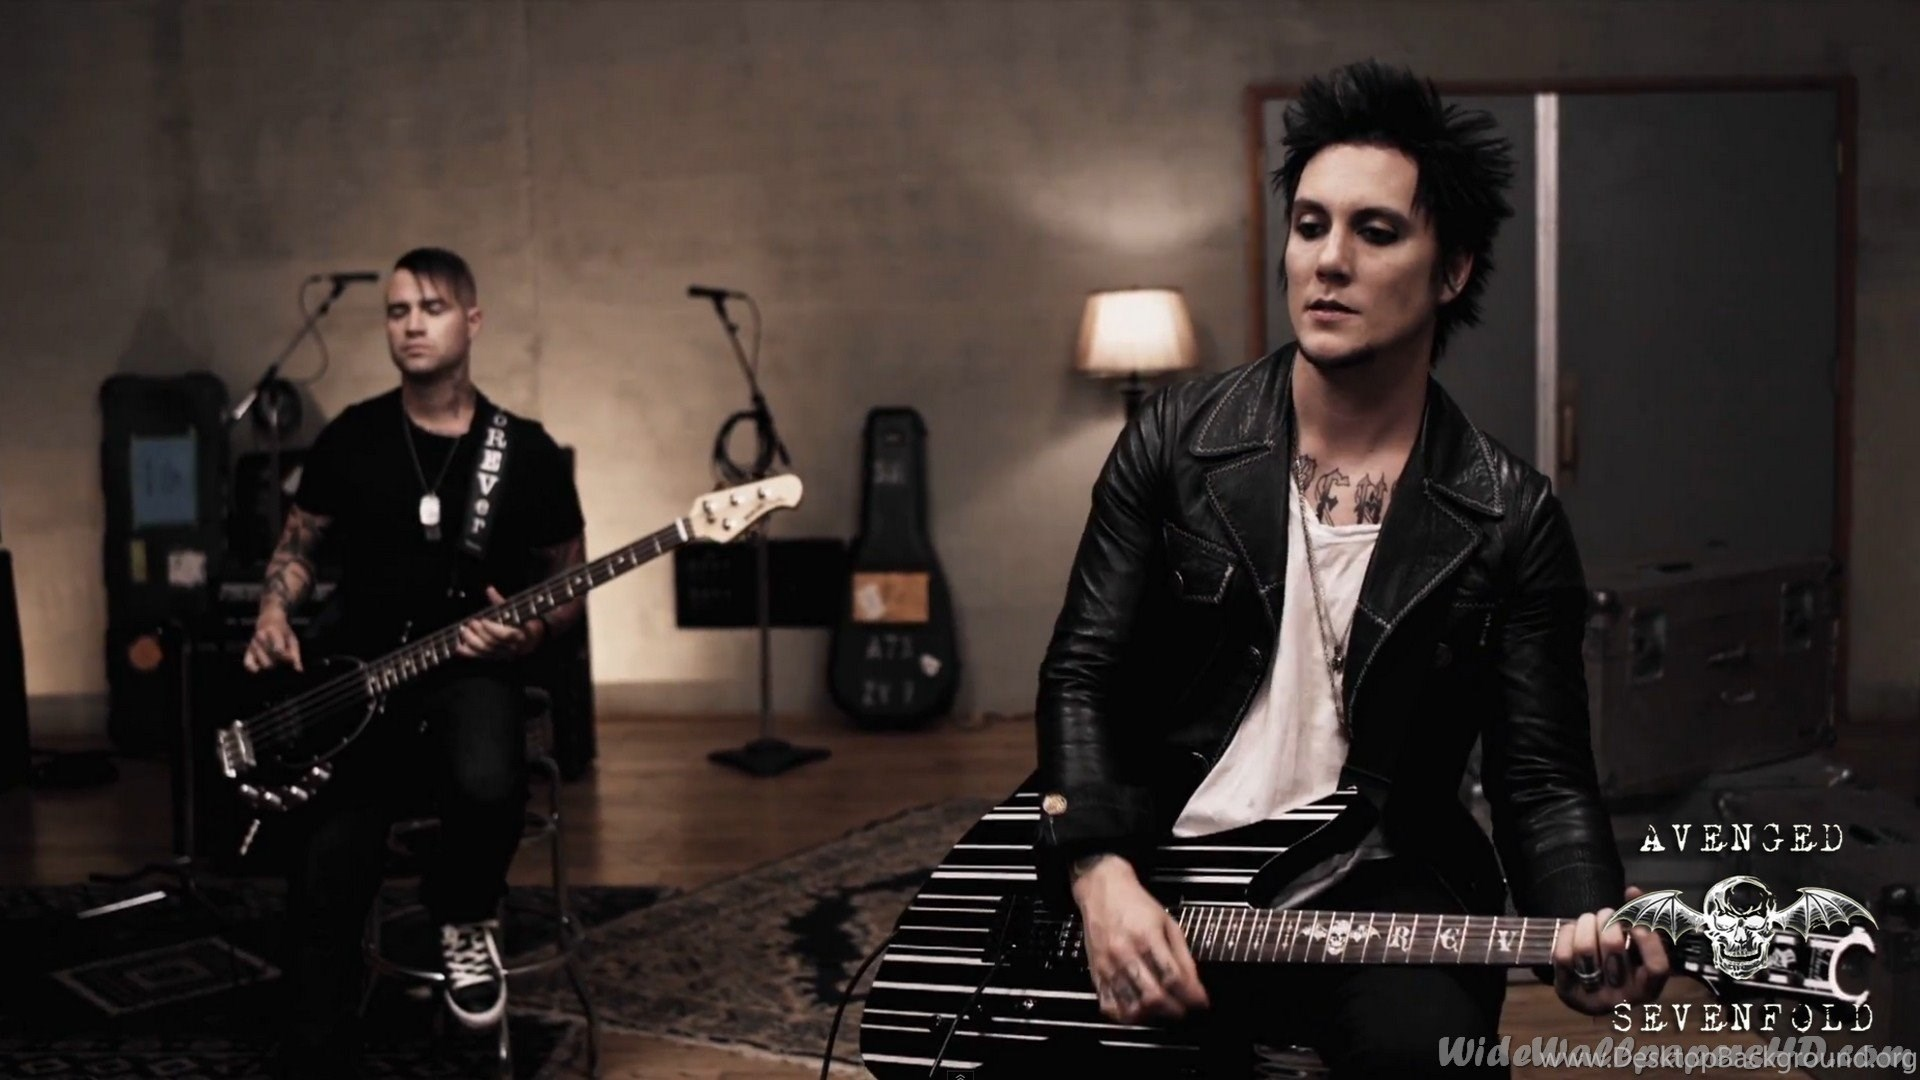 wallpapers synyster gates avenged sevenfold 1920x1080 desktop background